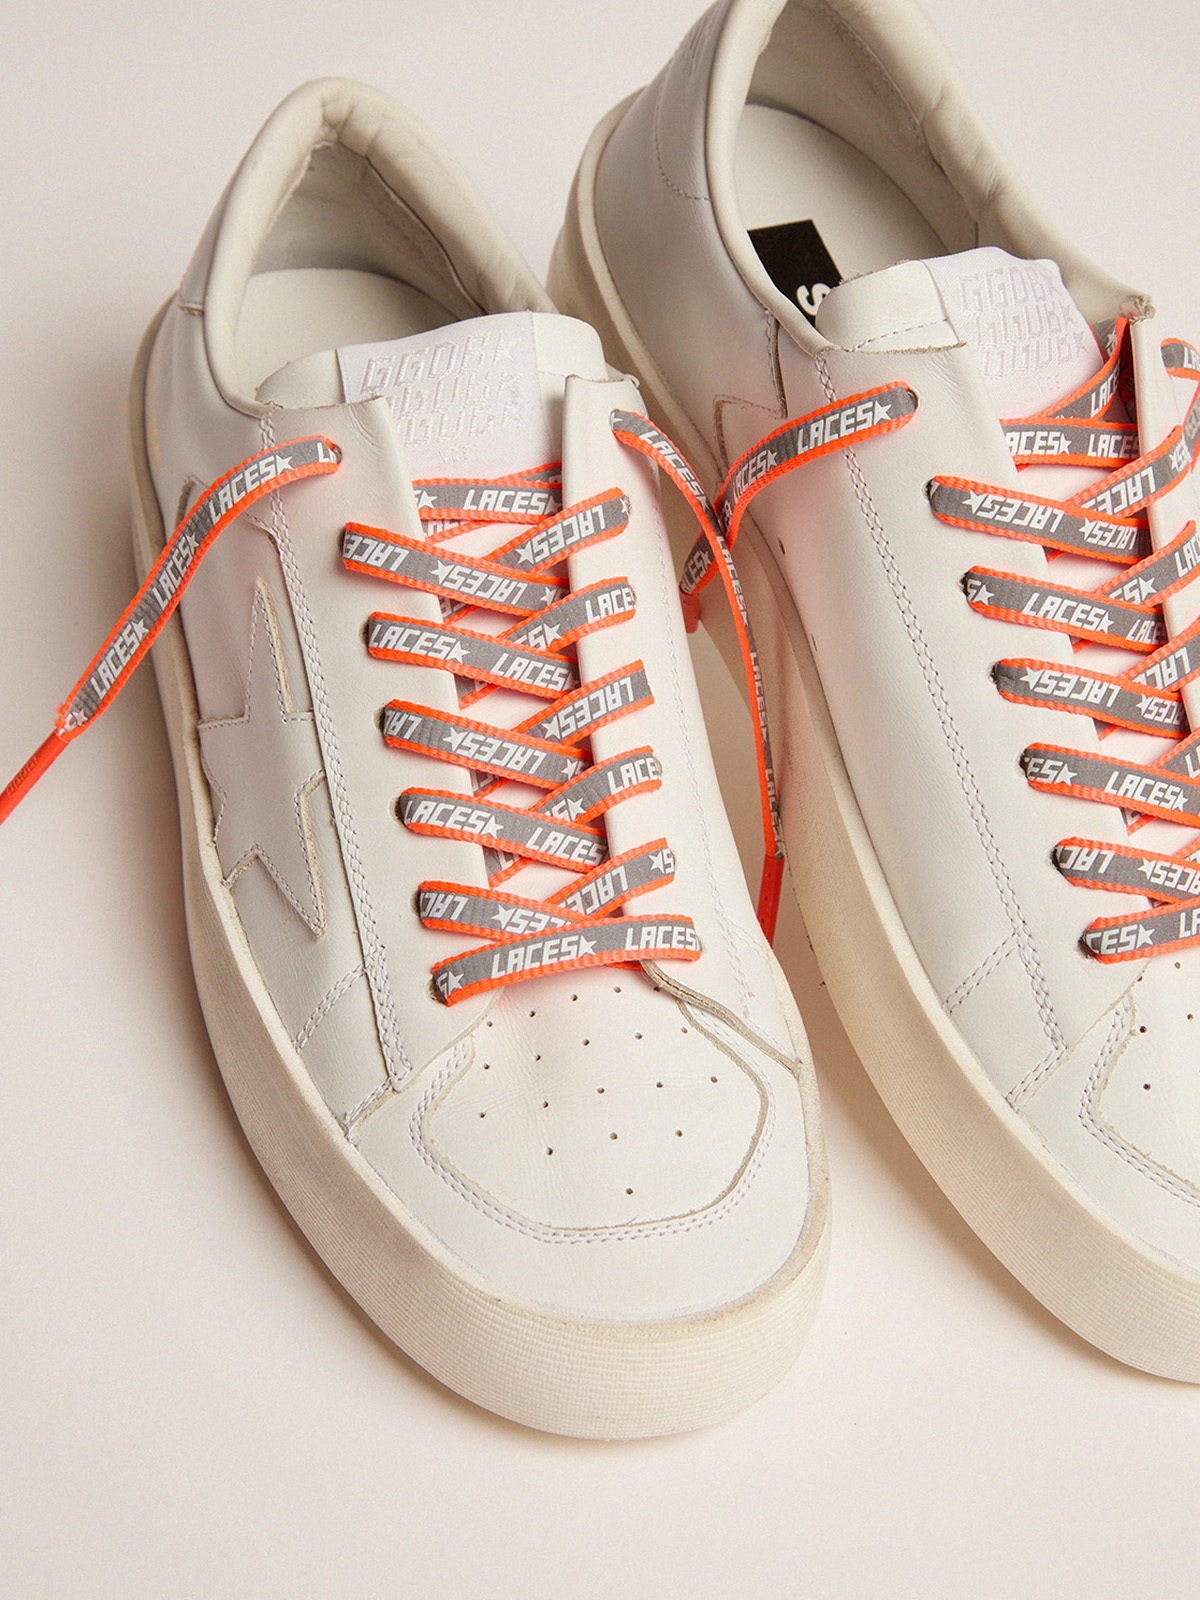 Golden Goose - Women's neon orange reflective laces with laces print in